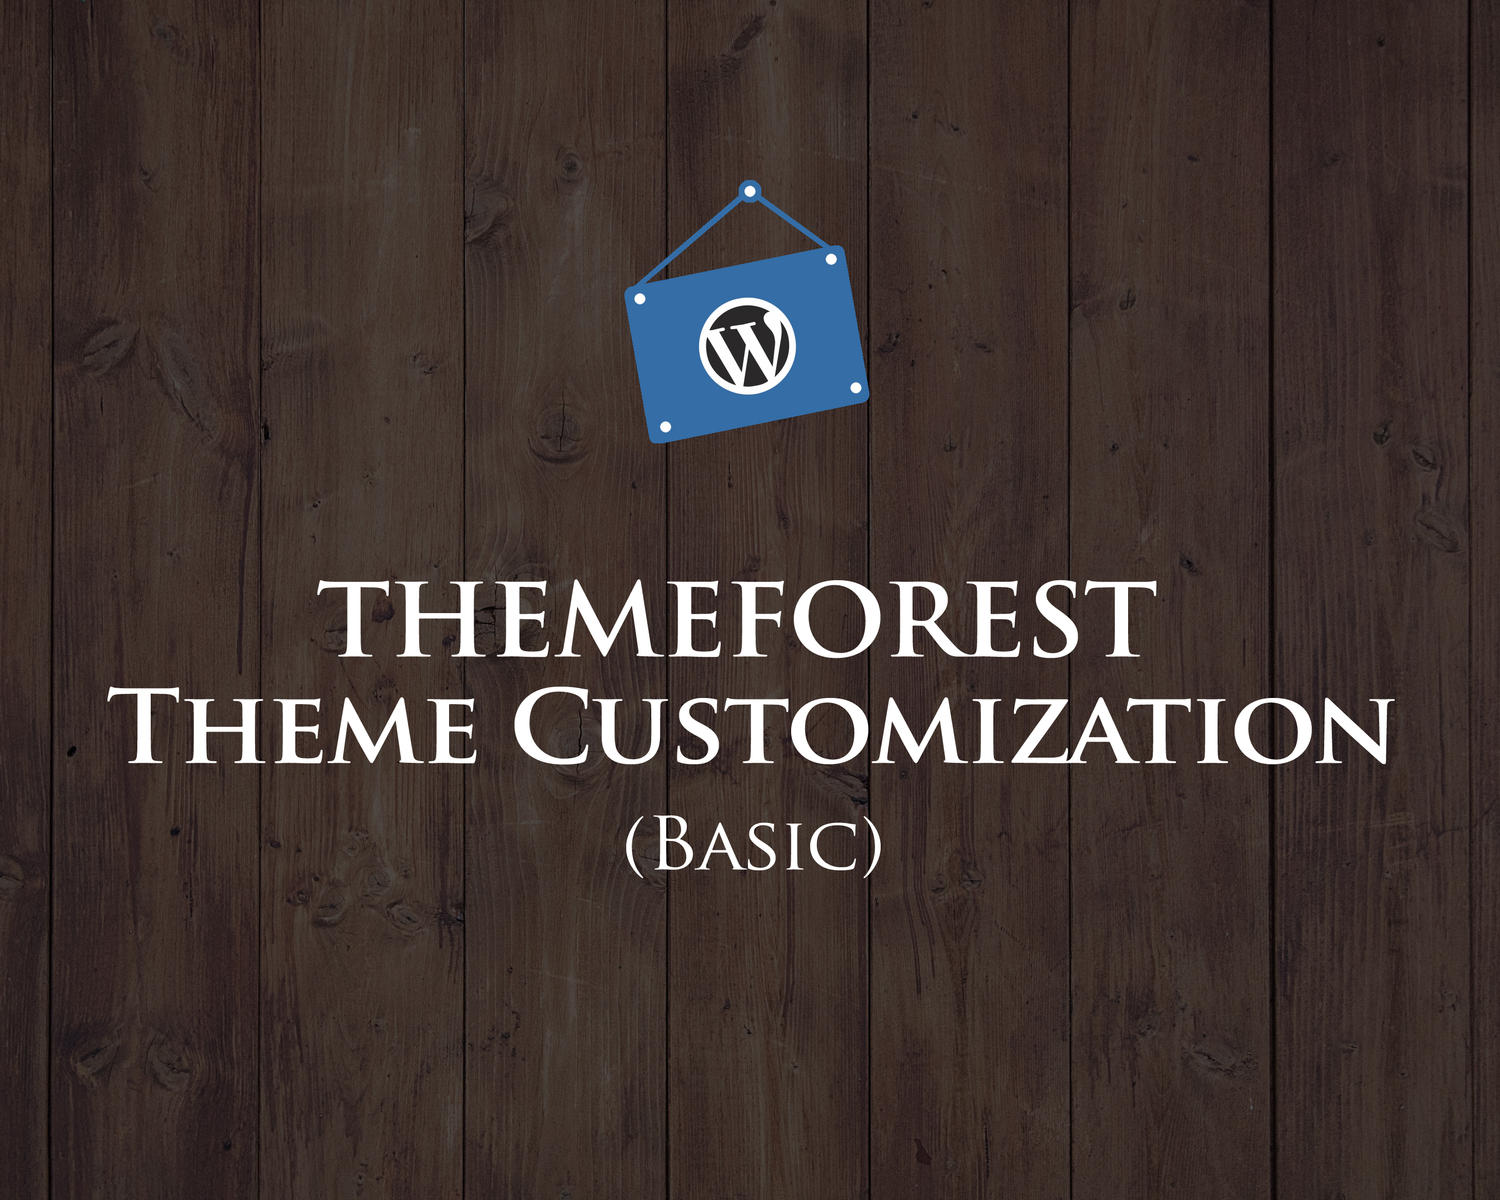 Themeforest Theme Customization (Basic) by hasanet - 98525